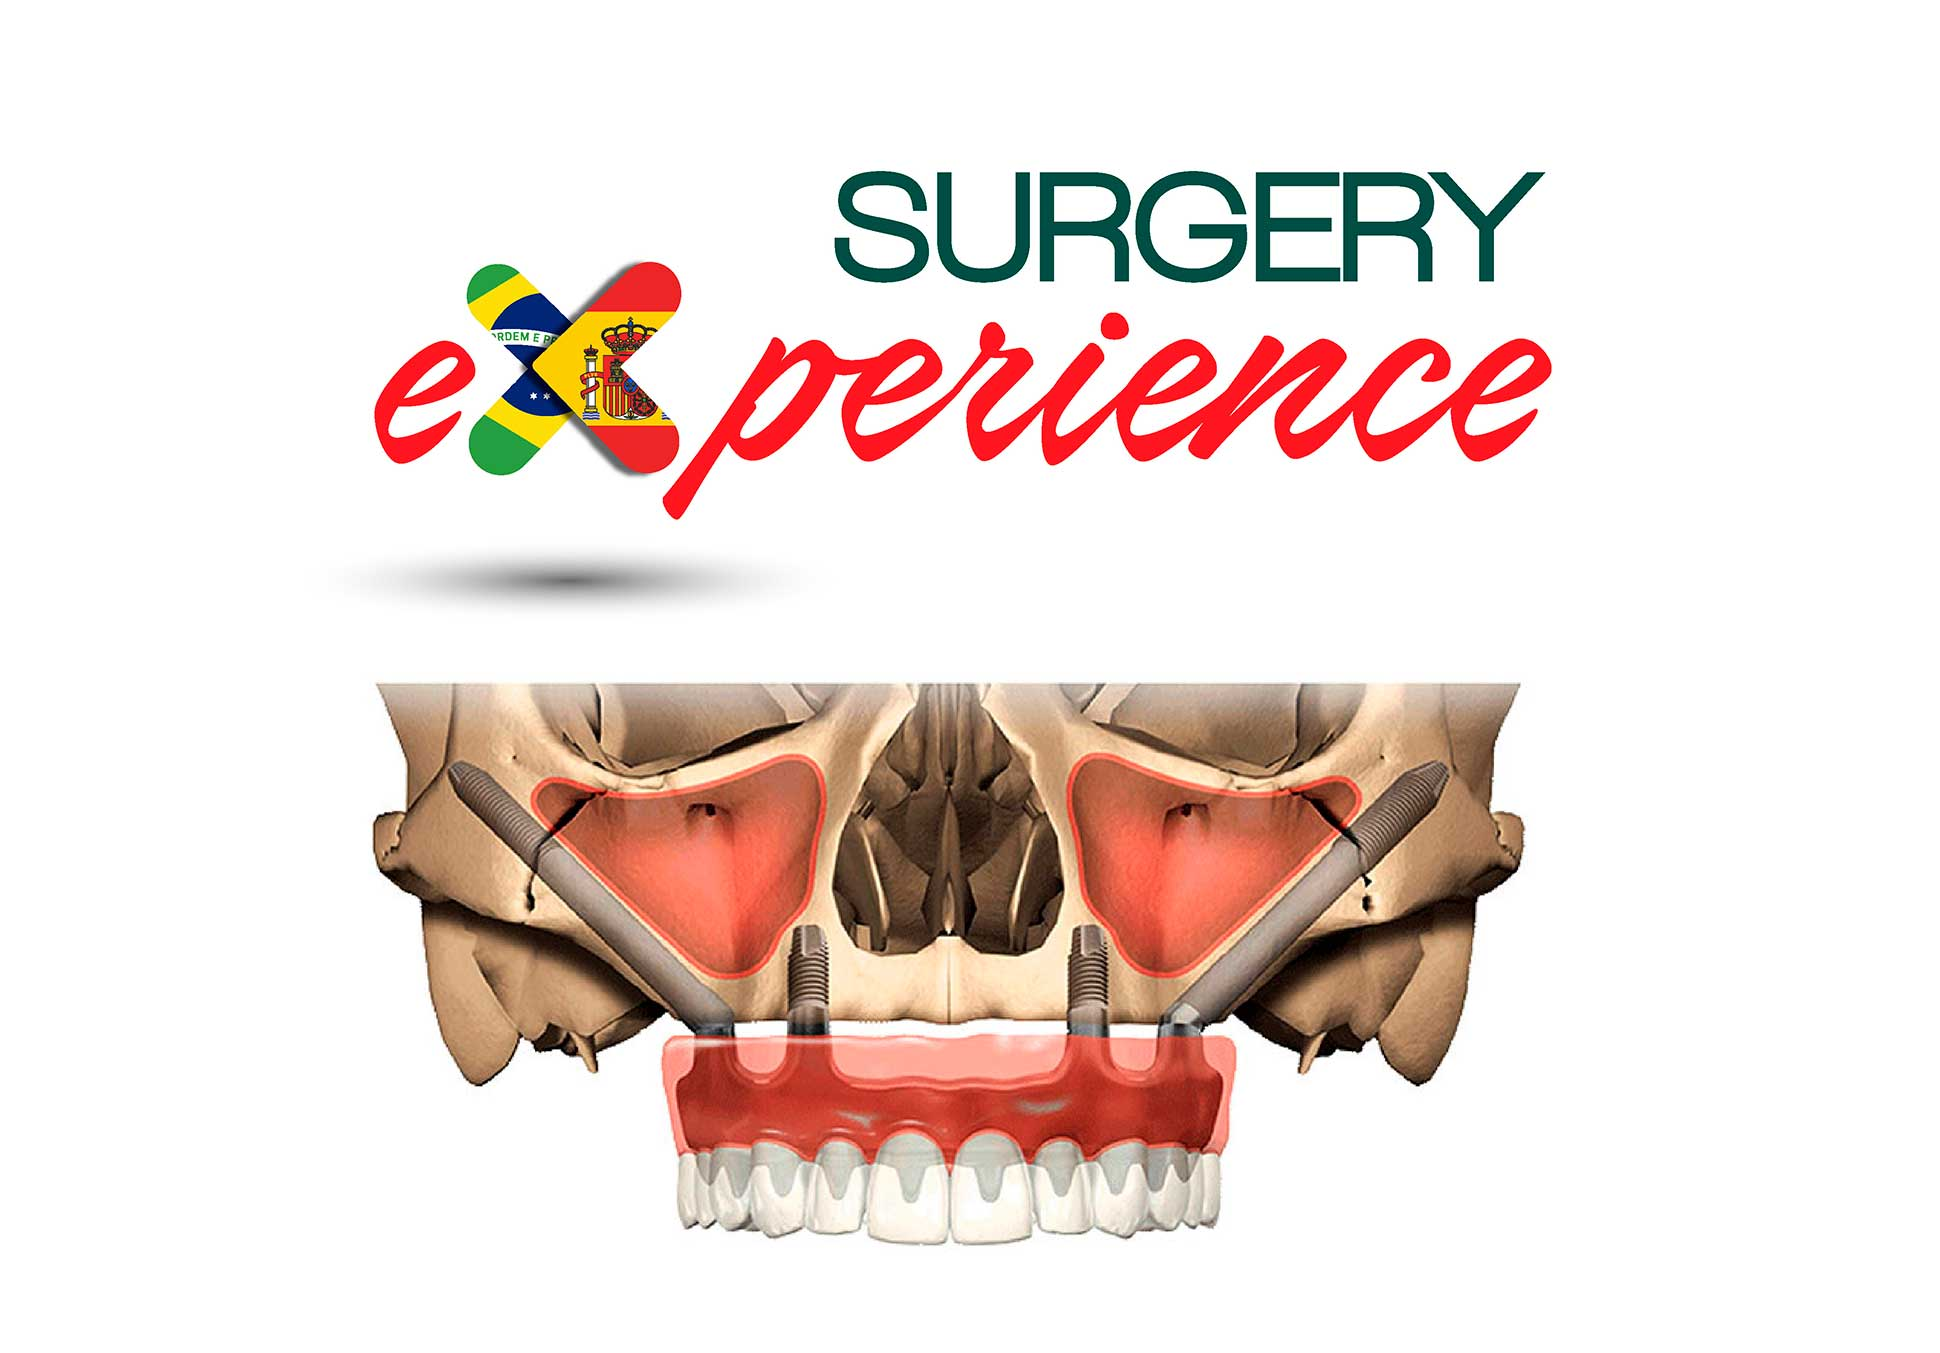 surgery experience zygoma dental innovation cursos cirugia